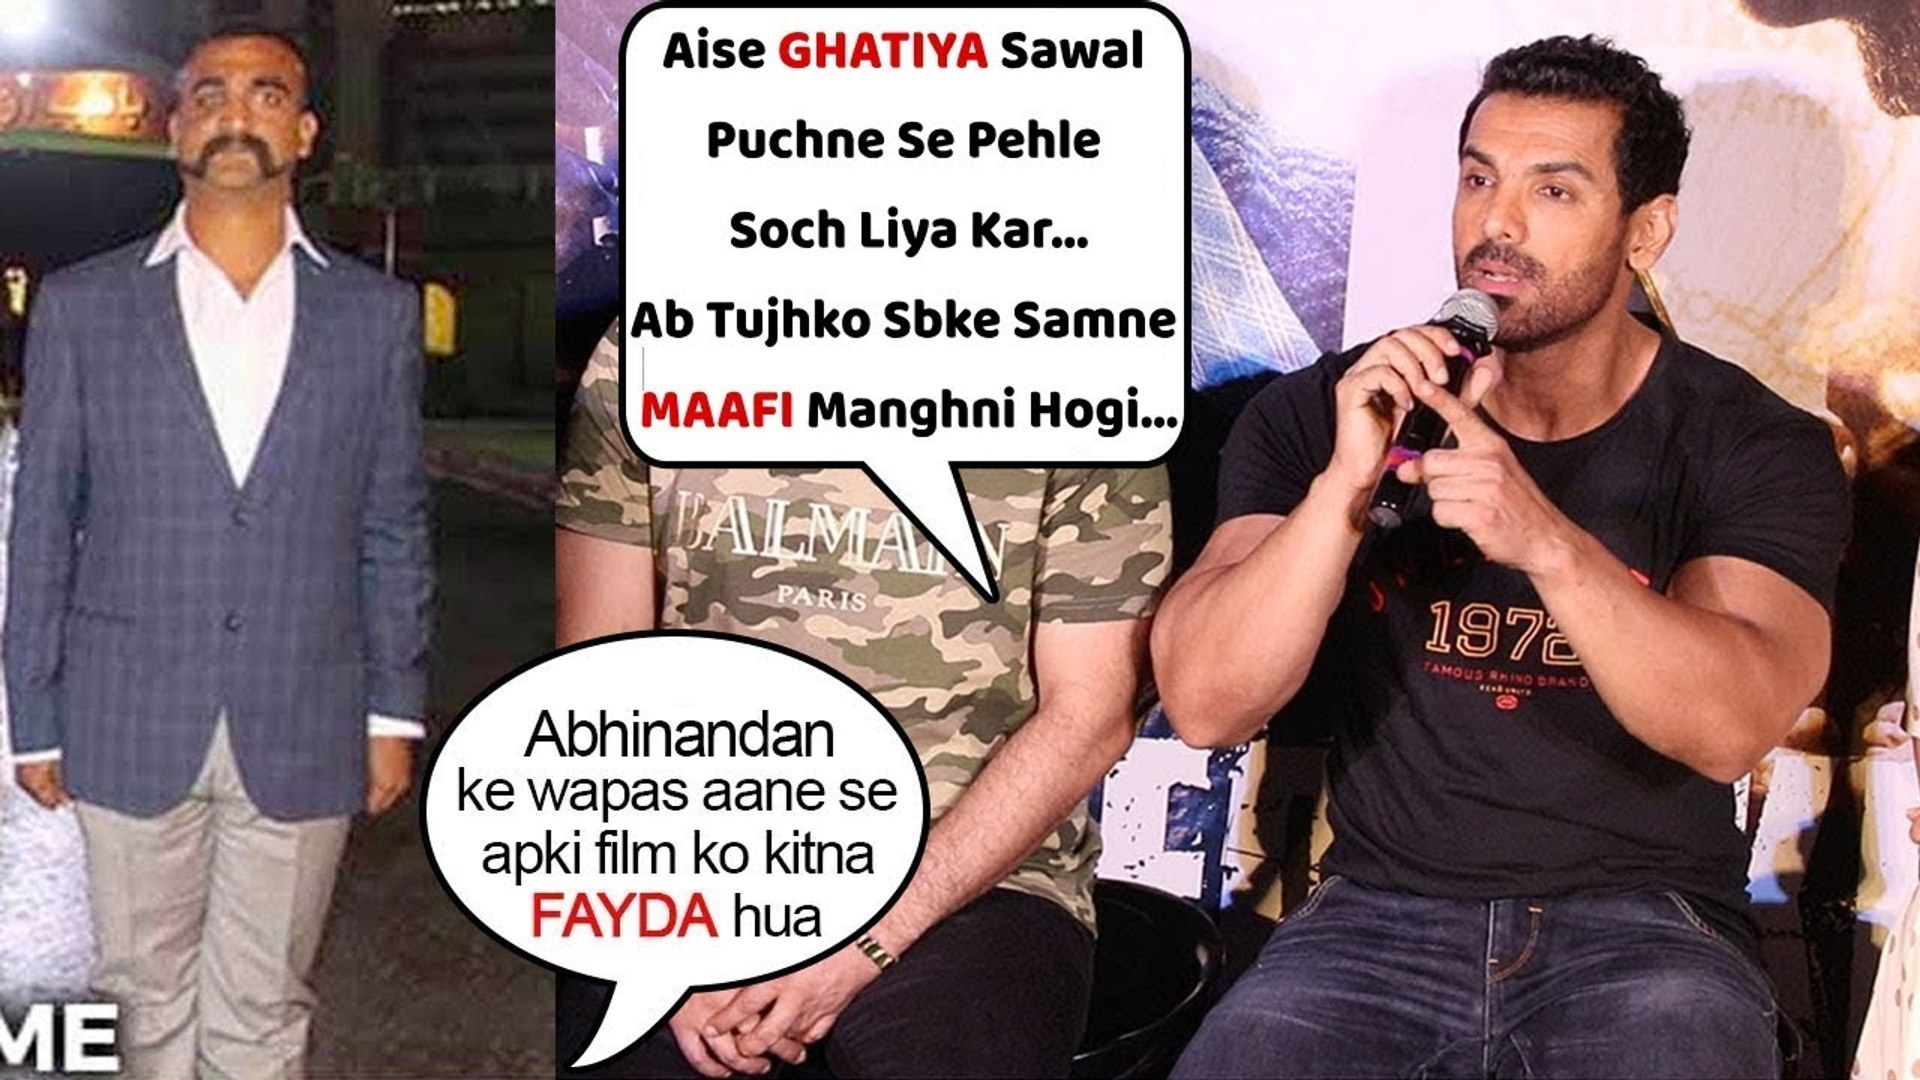 John Abraham Badly INSULTS Media Reporter For Asking STUPID Question